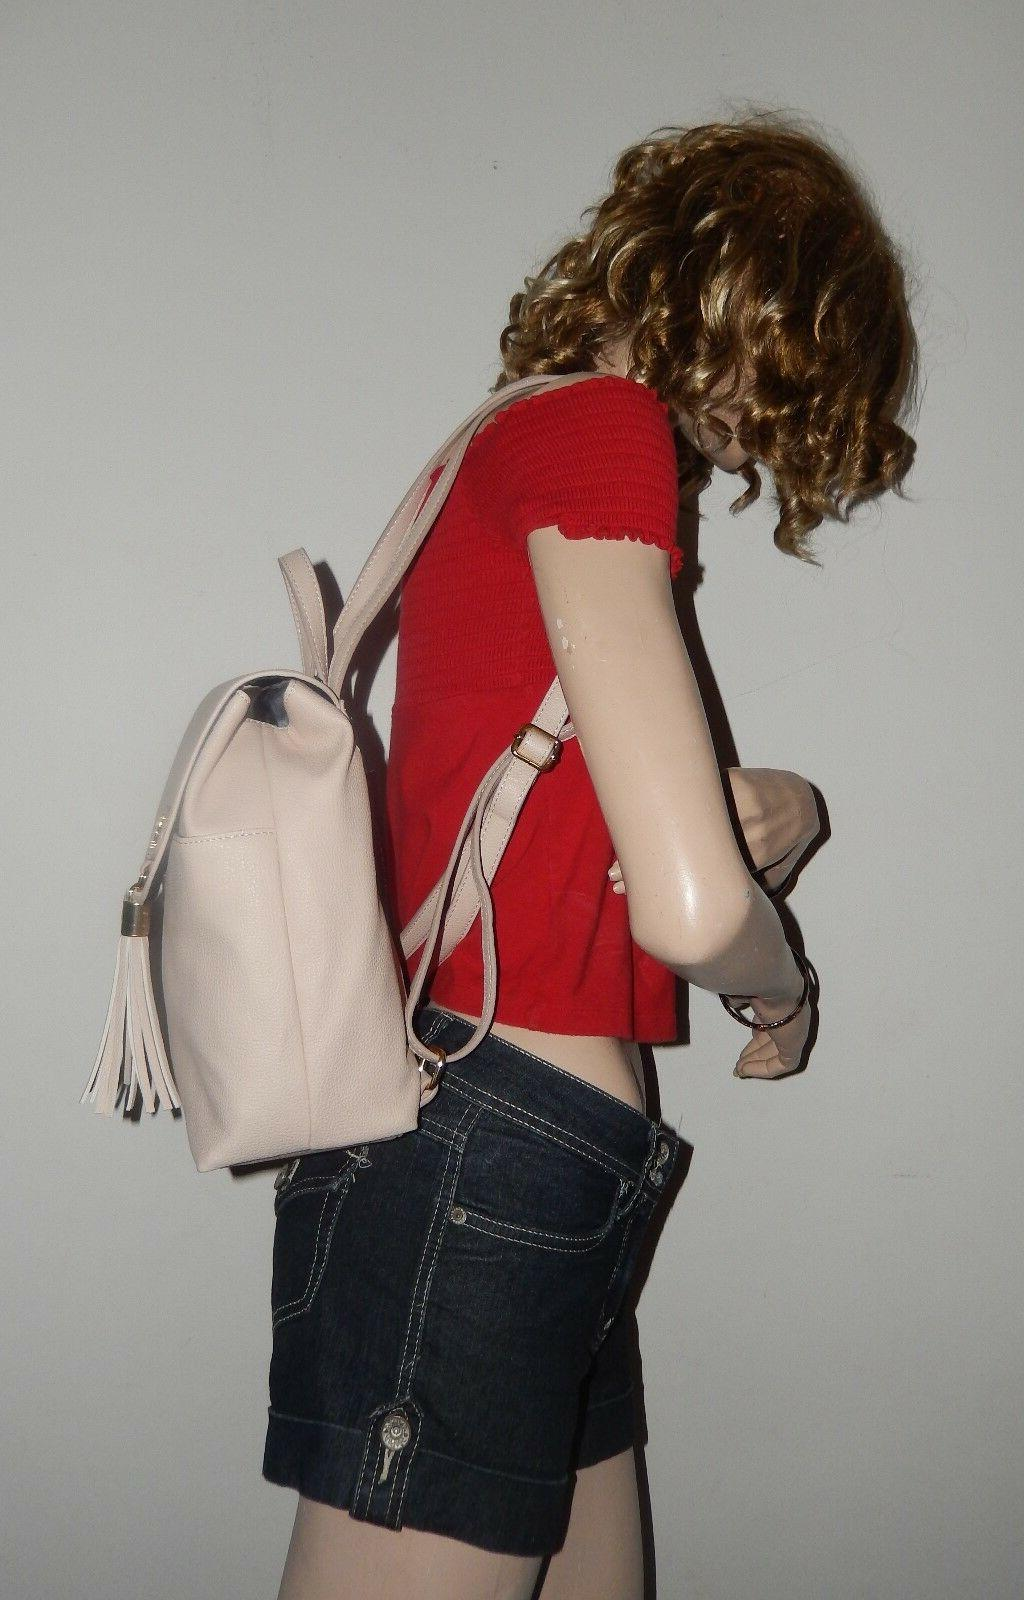 TOMMY HILFIGER BAGPACK IN CREAM